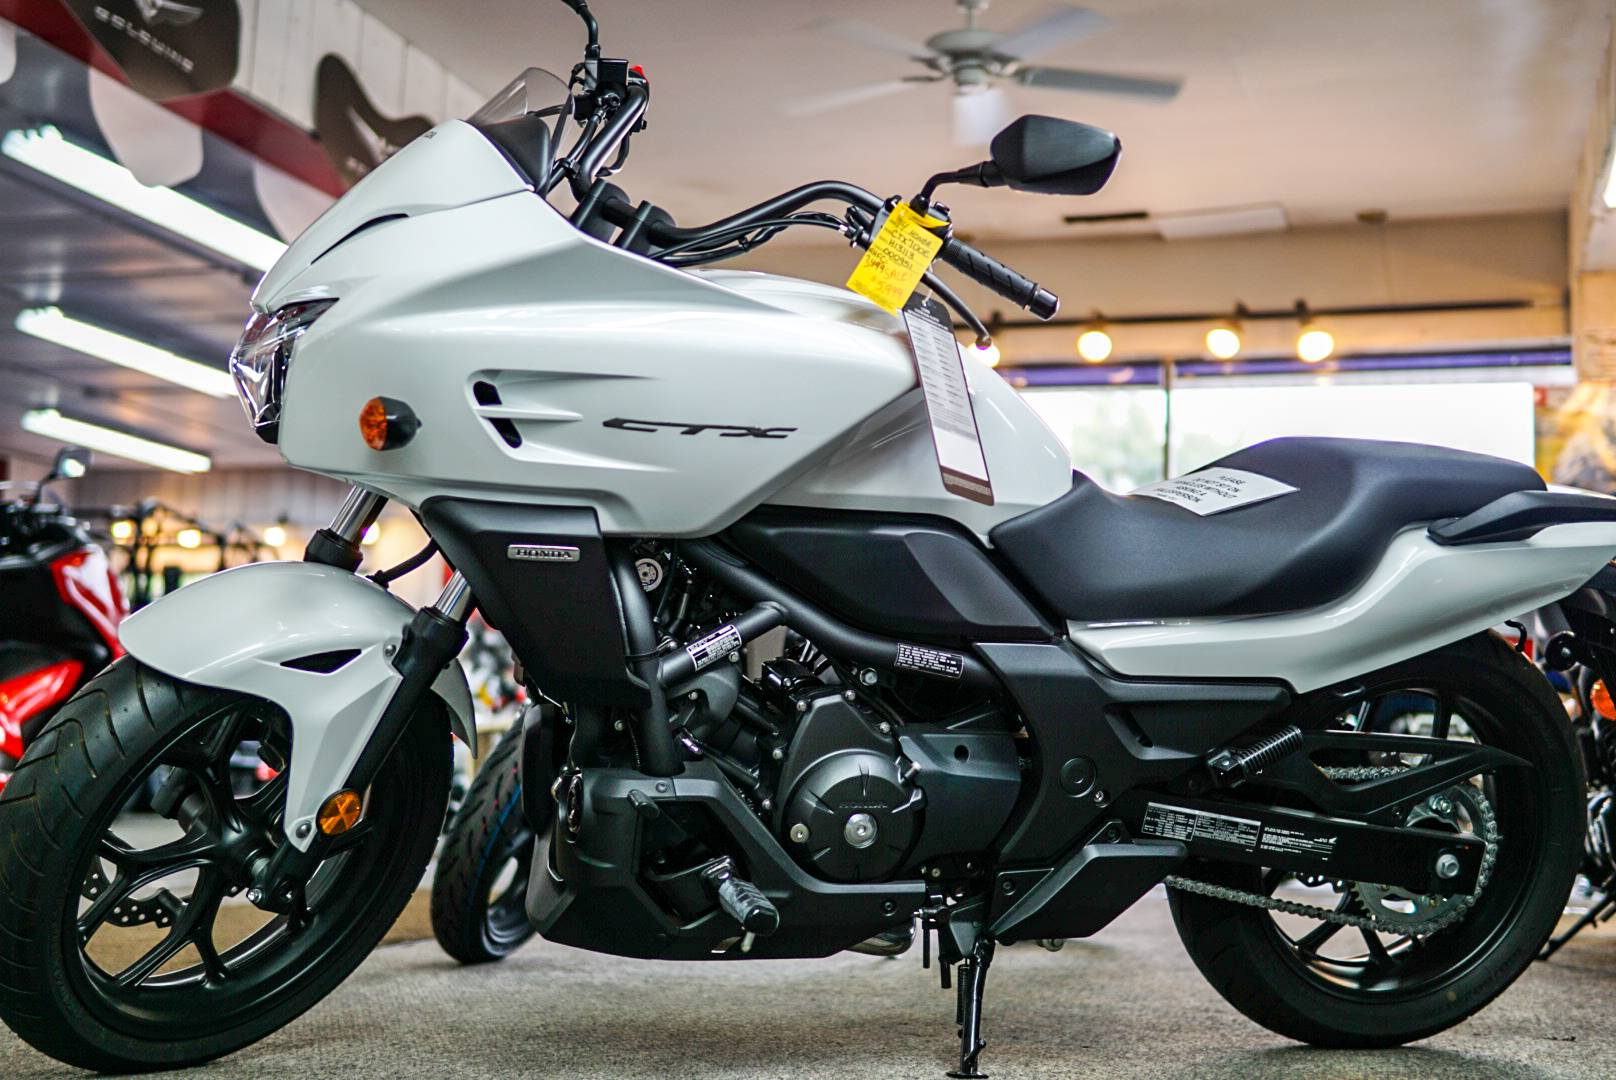 New 2014 Honda Ctx700 Motorcycles In Aurora Il Stock Number H13113 1970 Motorcycle Vin Decoder Illinois